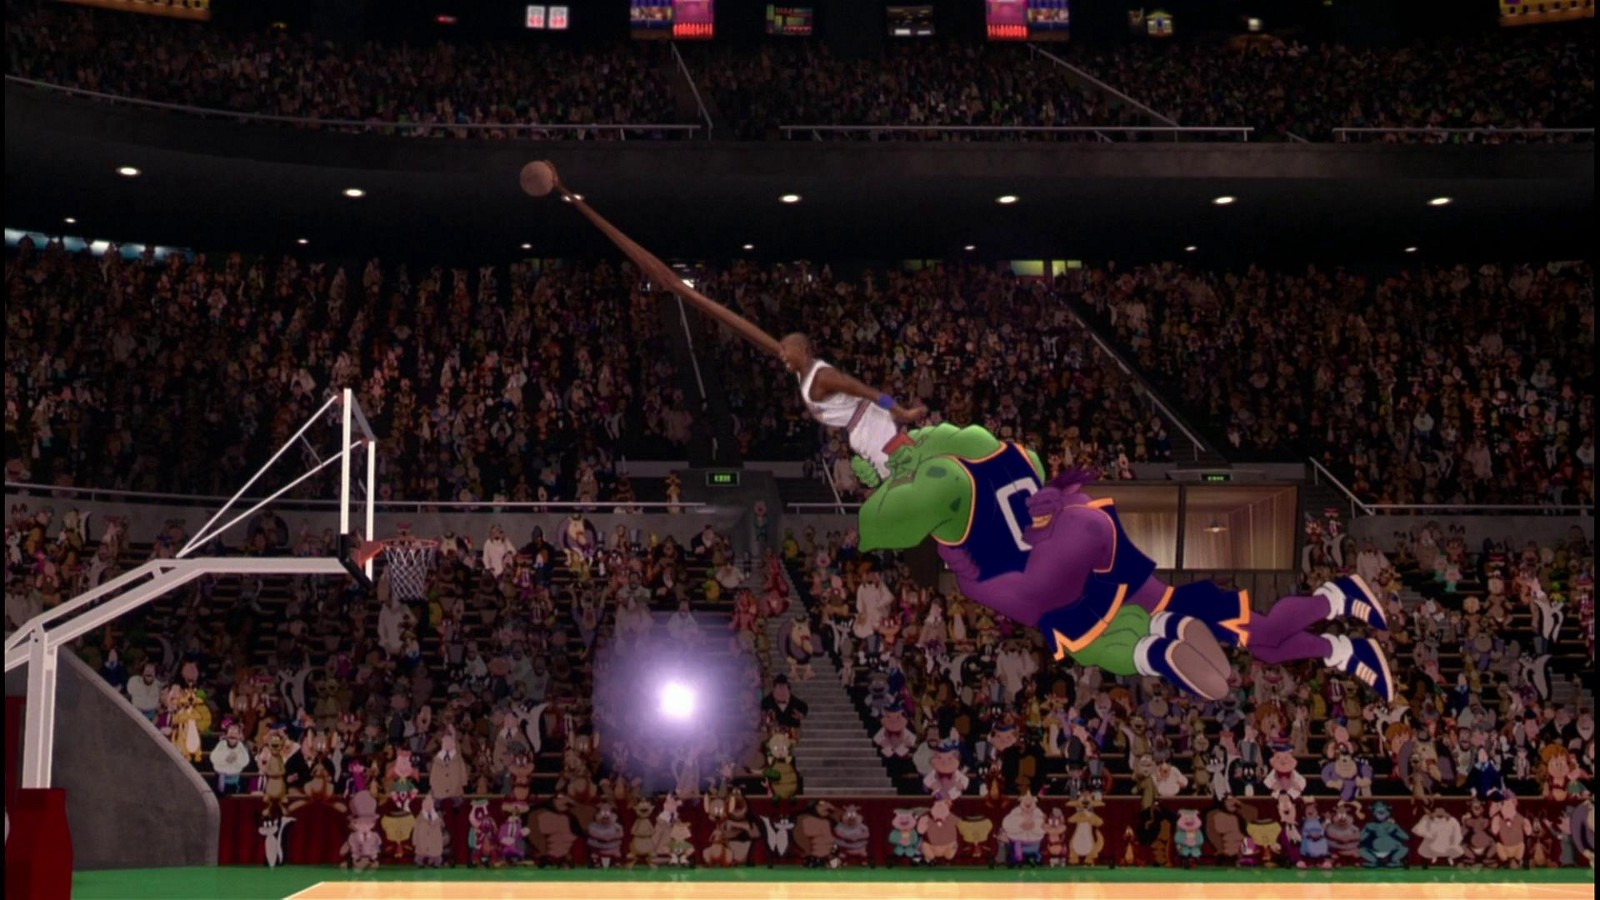 How the 2017 NBA Dunk Contest Will Go – The Unbalanced ...